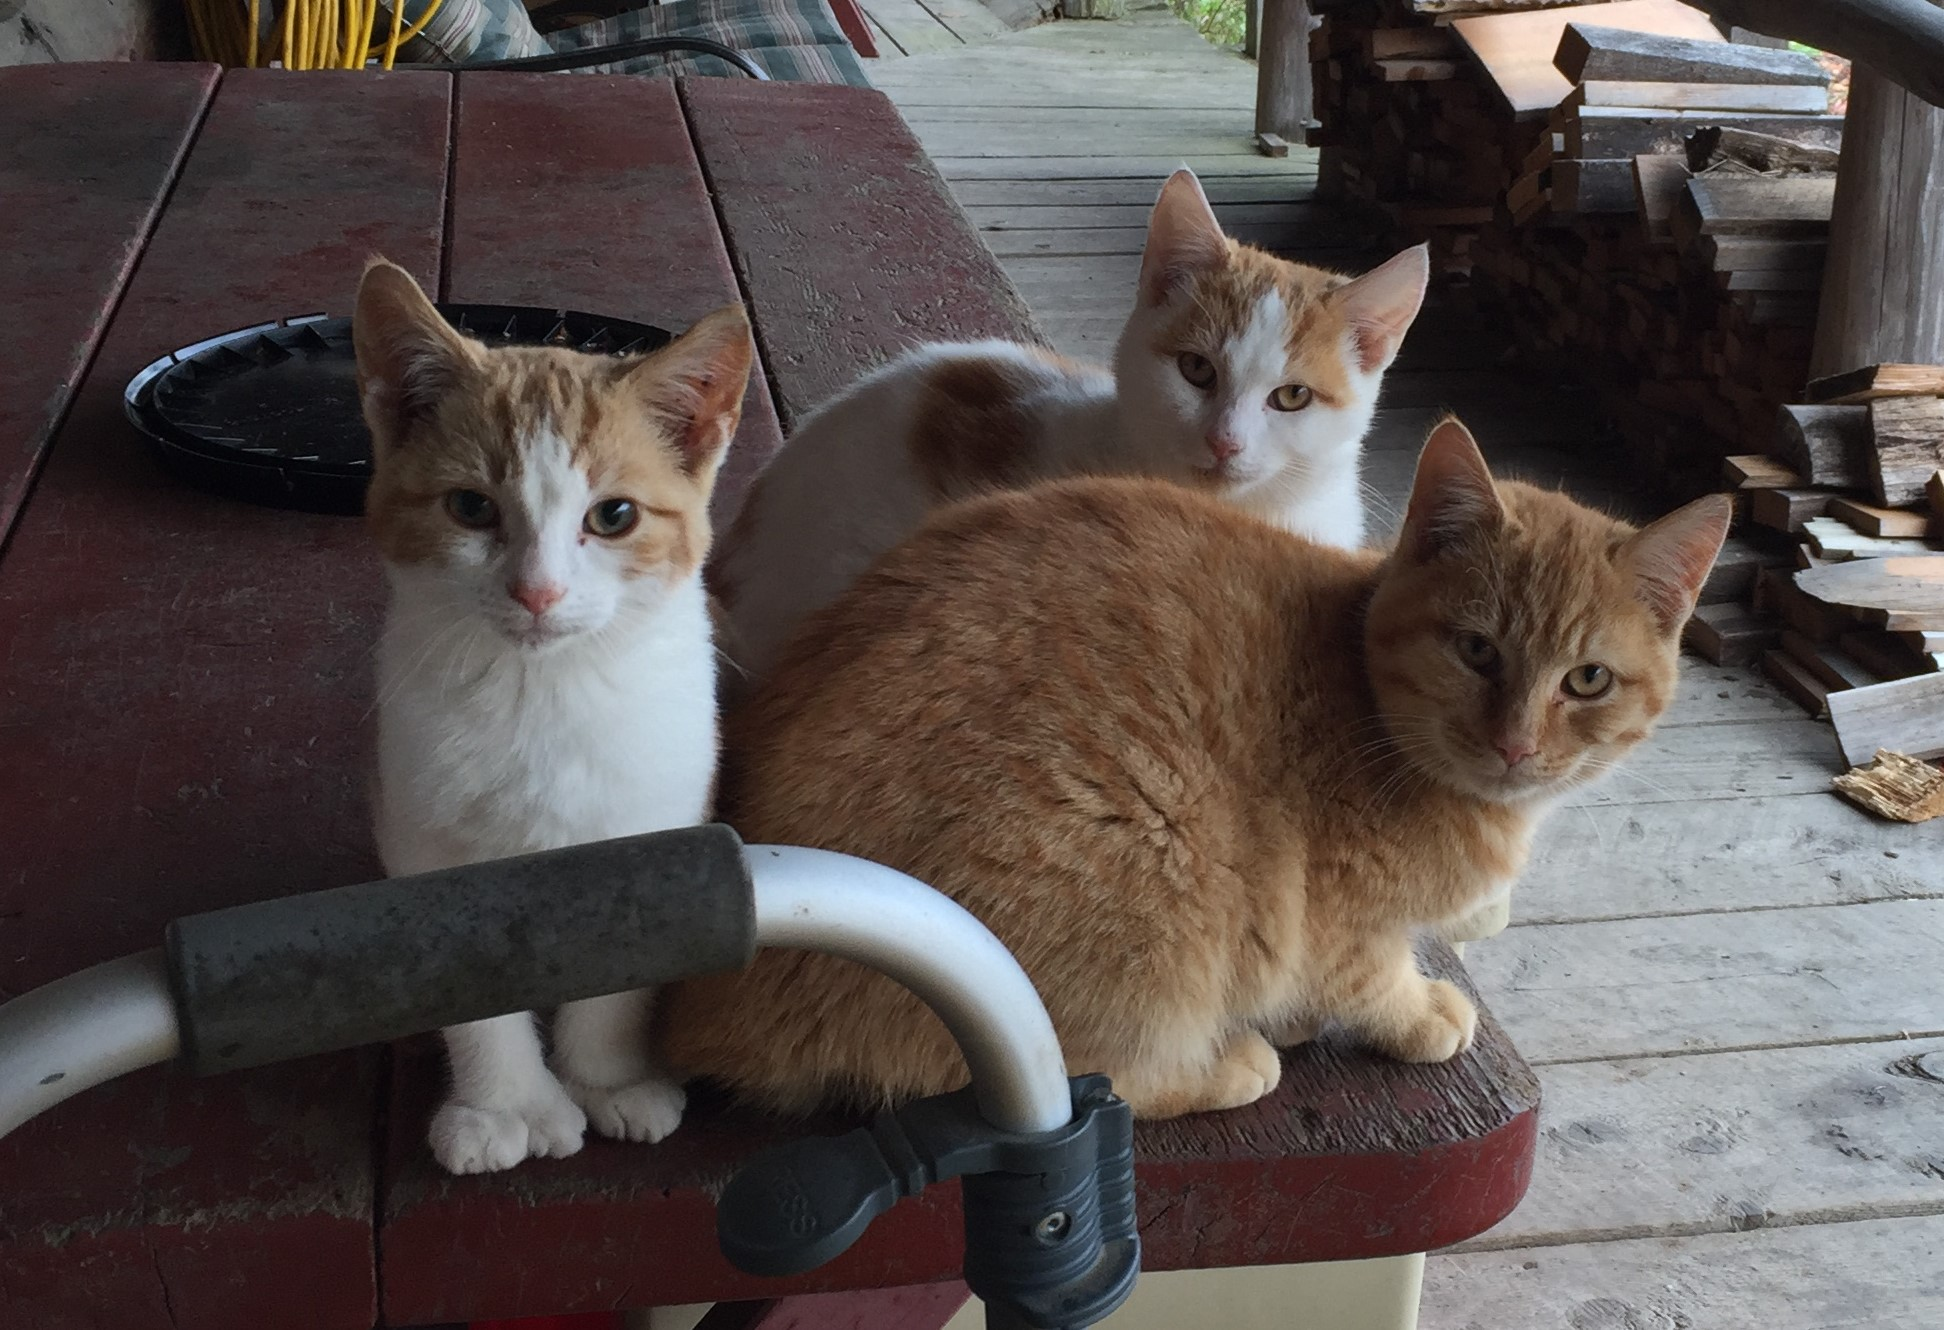 From right to left: Larry, Moe and Curly